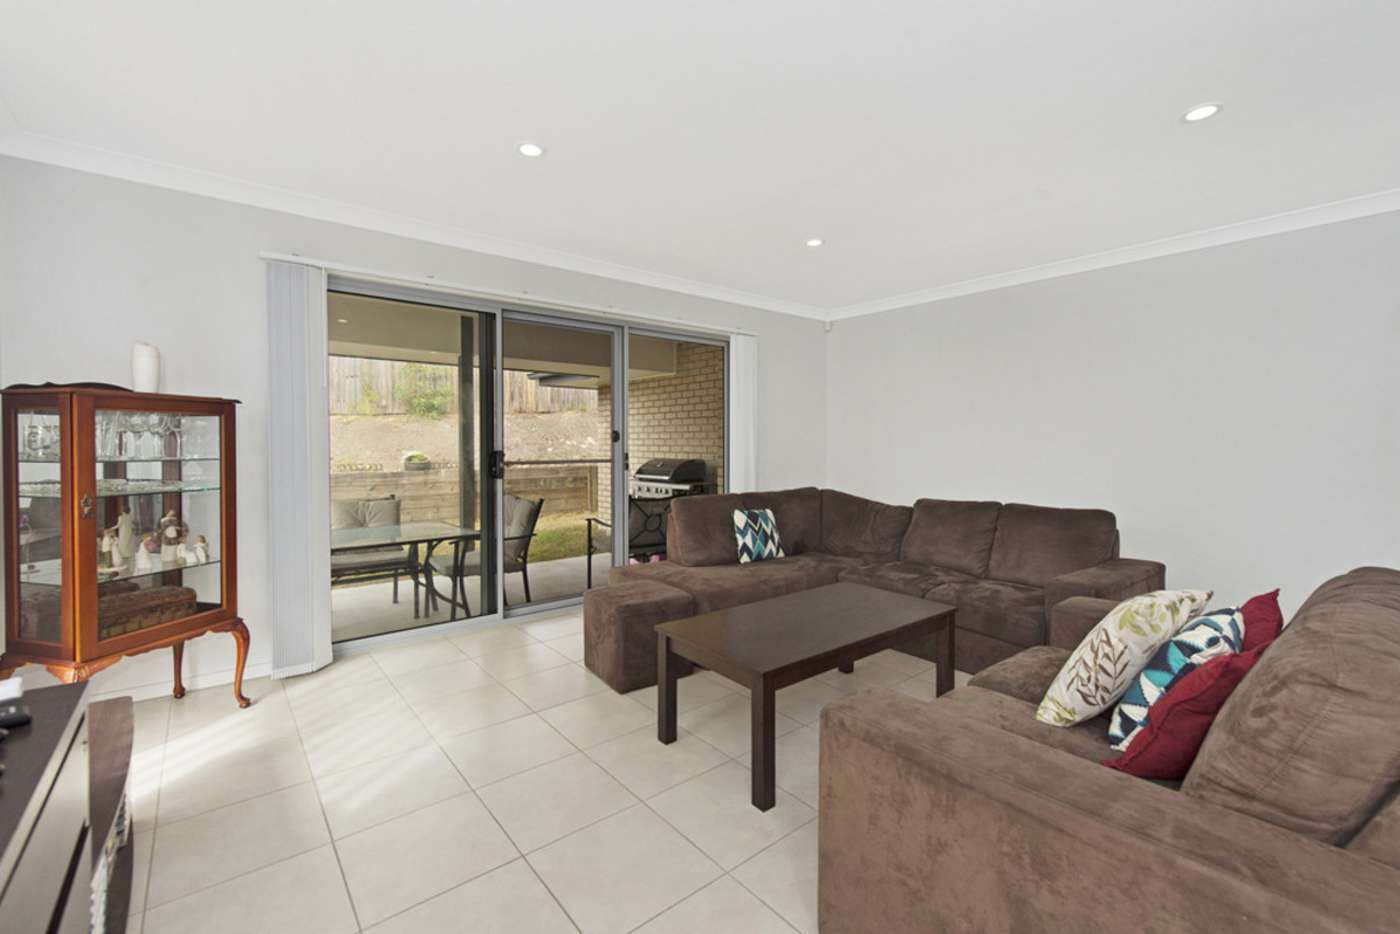 Fifth view of Homely house listing, 18 Hollanders Crescent, Ormeau Hills QLD 4208